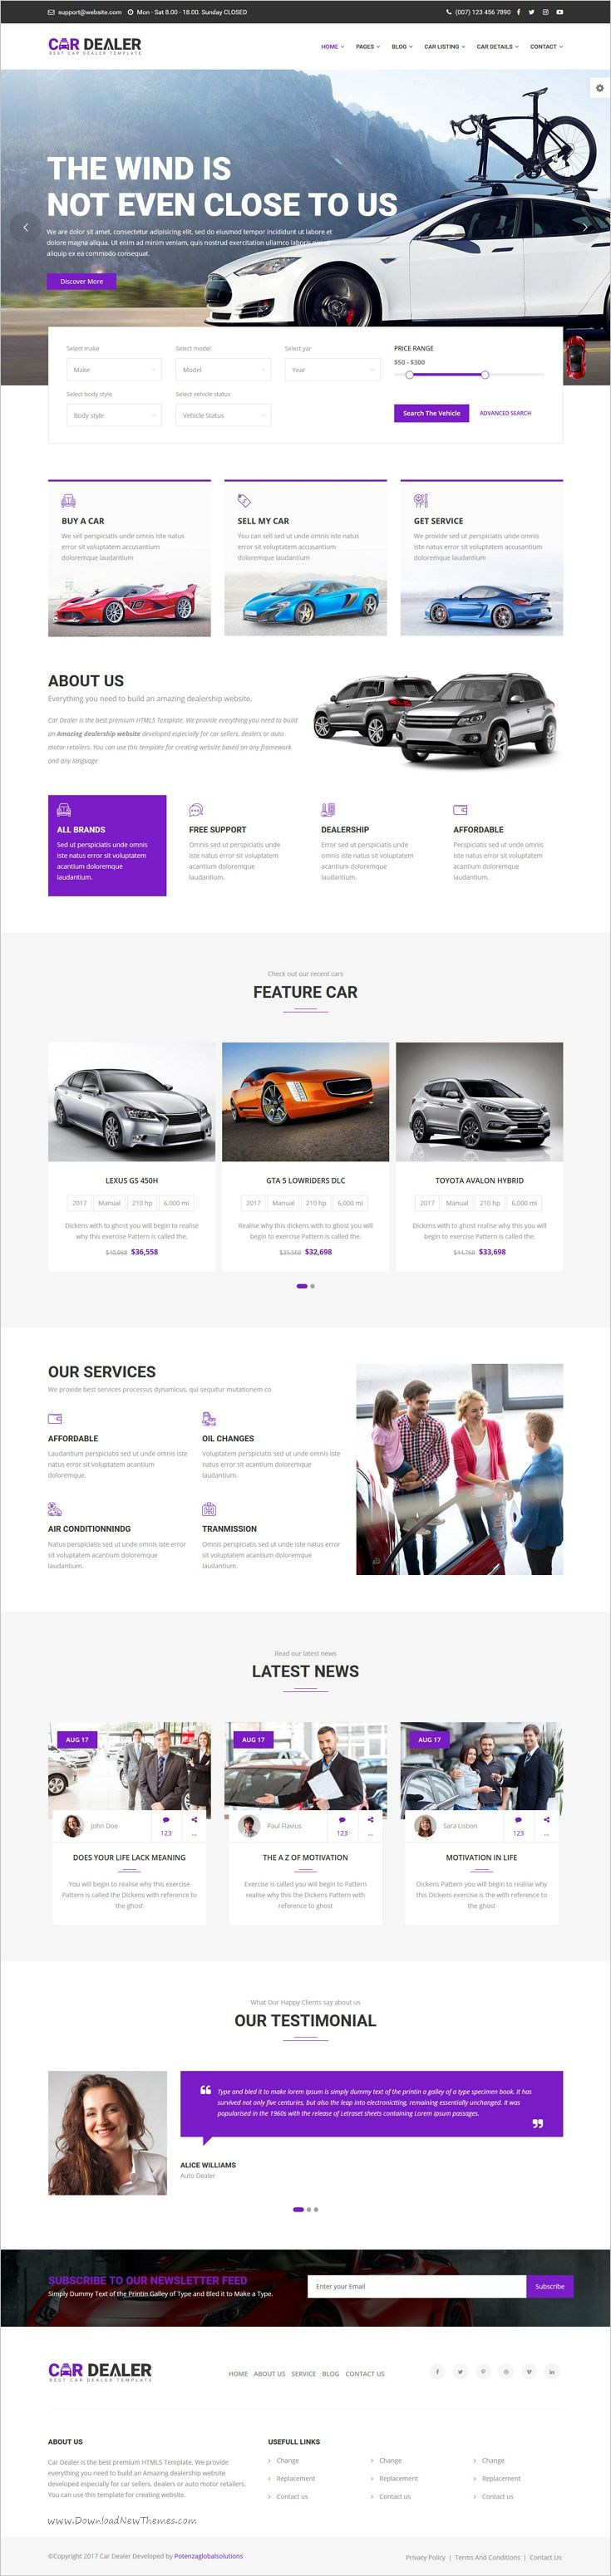 Car dealer is a wonderful #responsive 6in1 HTML5 bootstrap #template for best #car dealer #automotive websites with 4 unique animated sliders download now➩ https://themeforest.net/item/car-dealer-the-best-car-dealer-automotive-responsive-html5-template/19226545?ref=Datasata